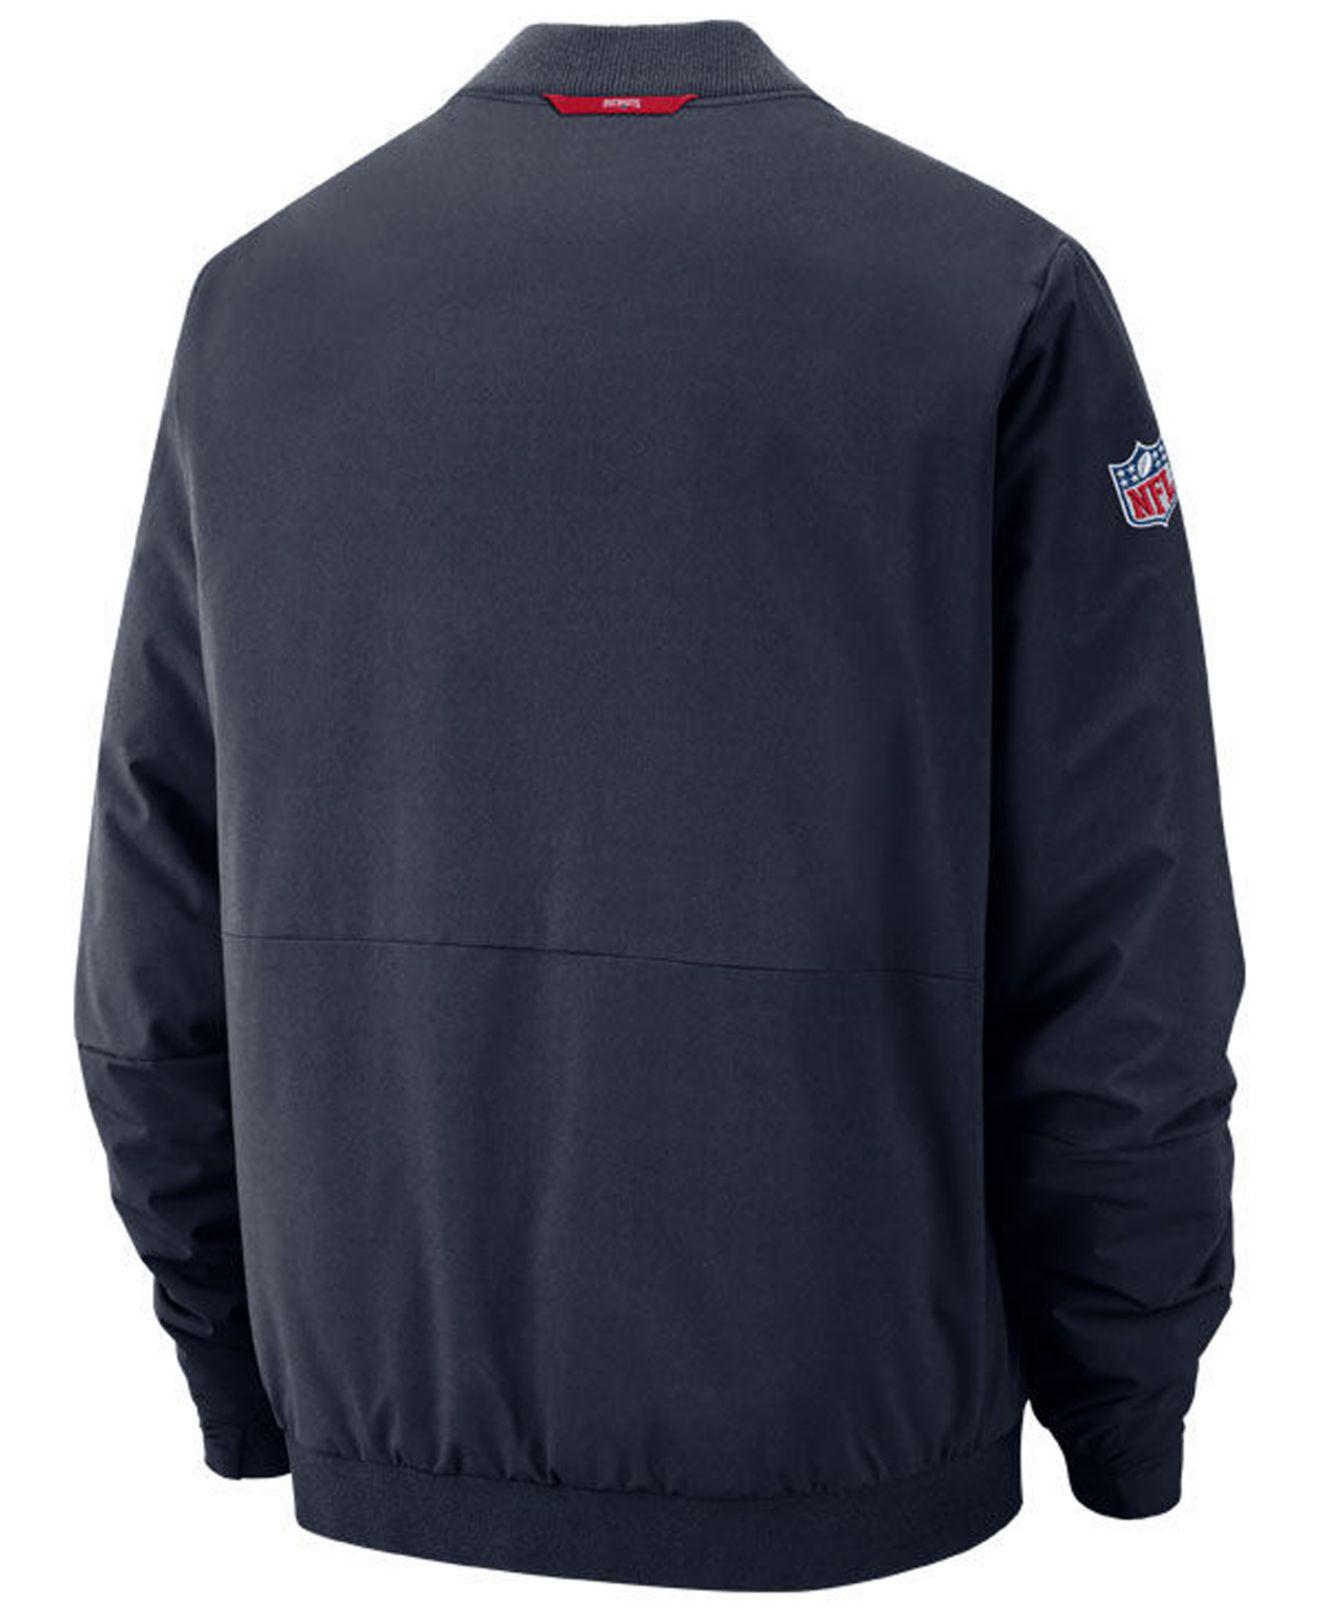 7411e5ee9f Lyst - Nike New England Patriots Bomber Jacket in Blue for Men